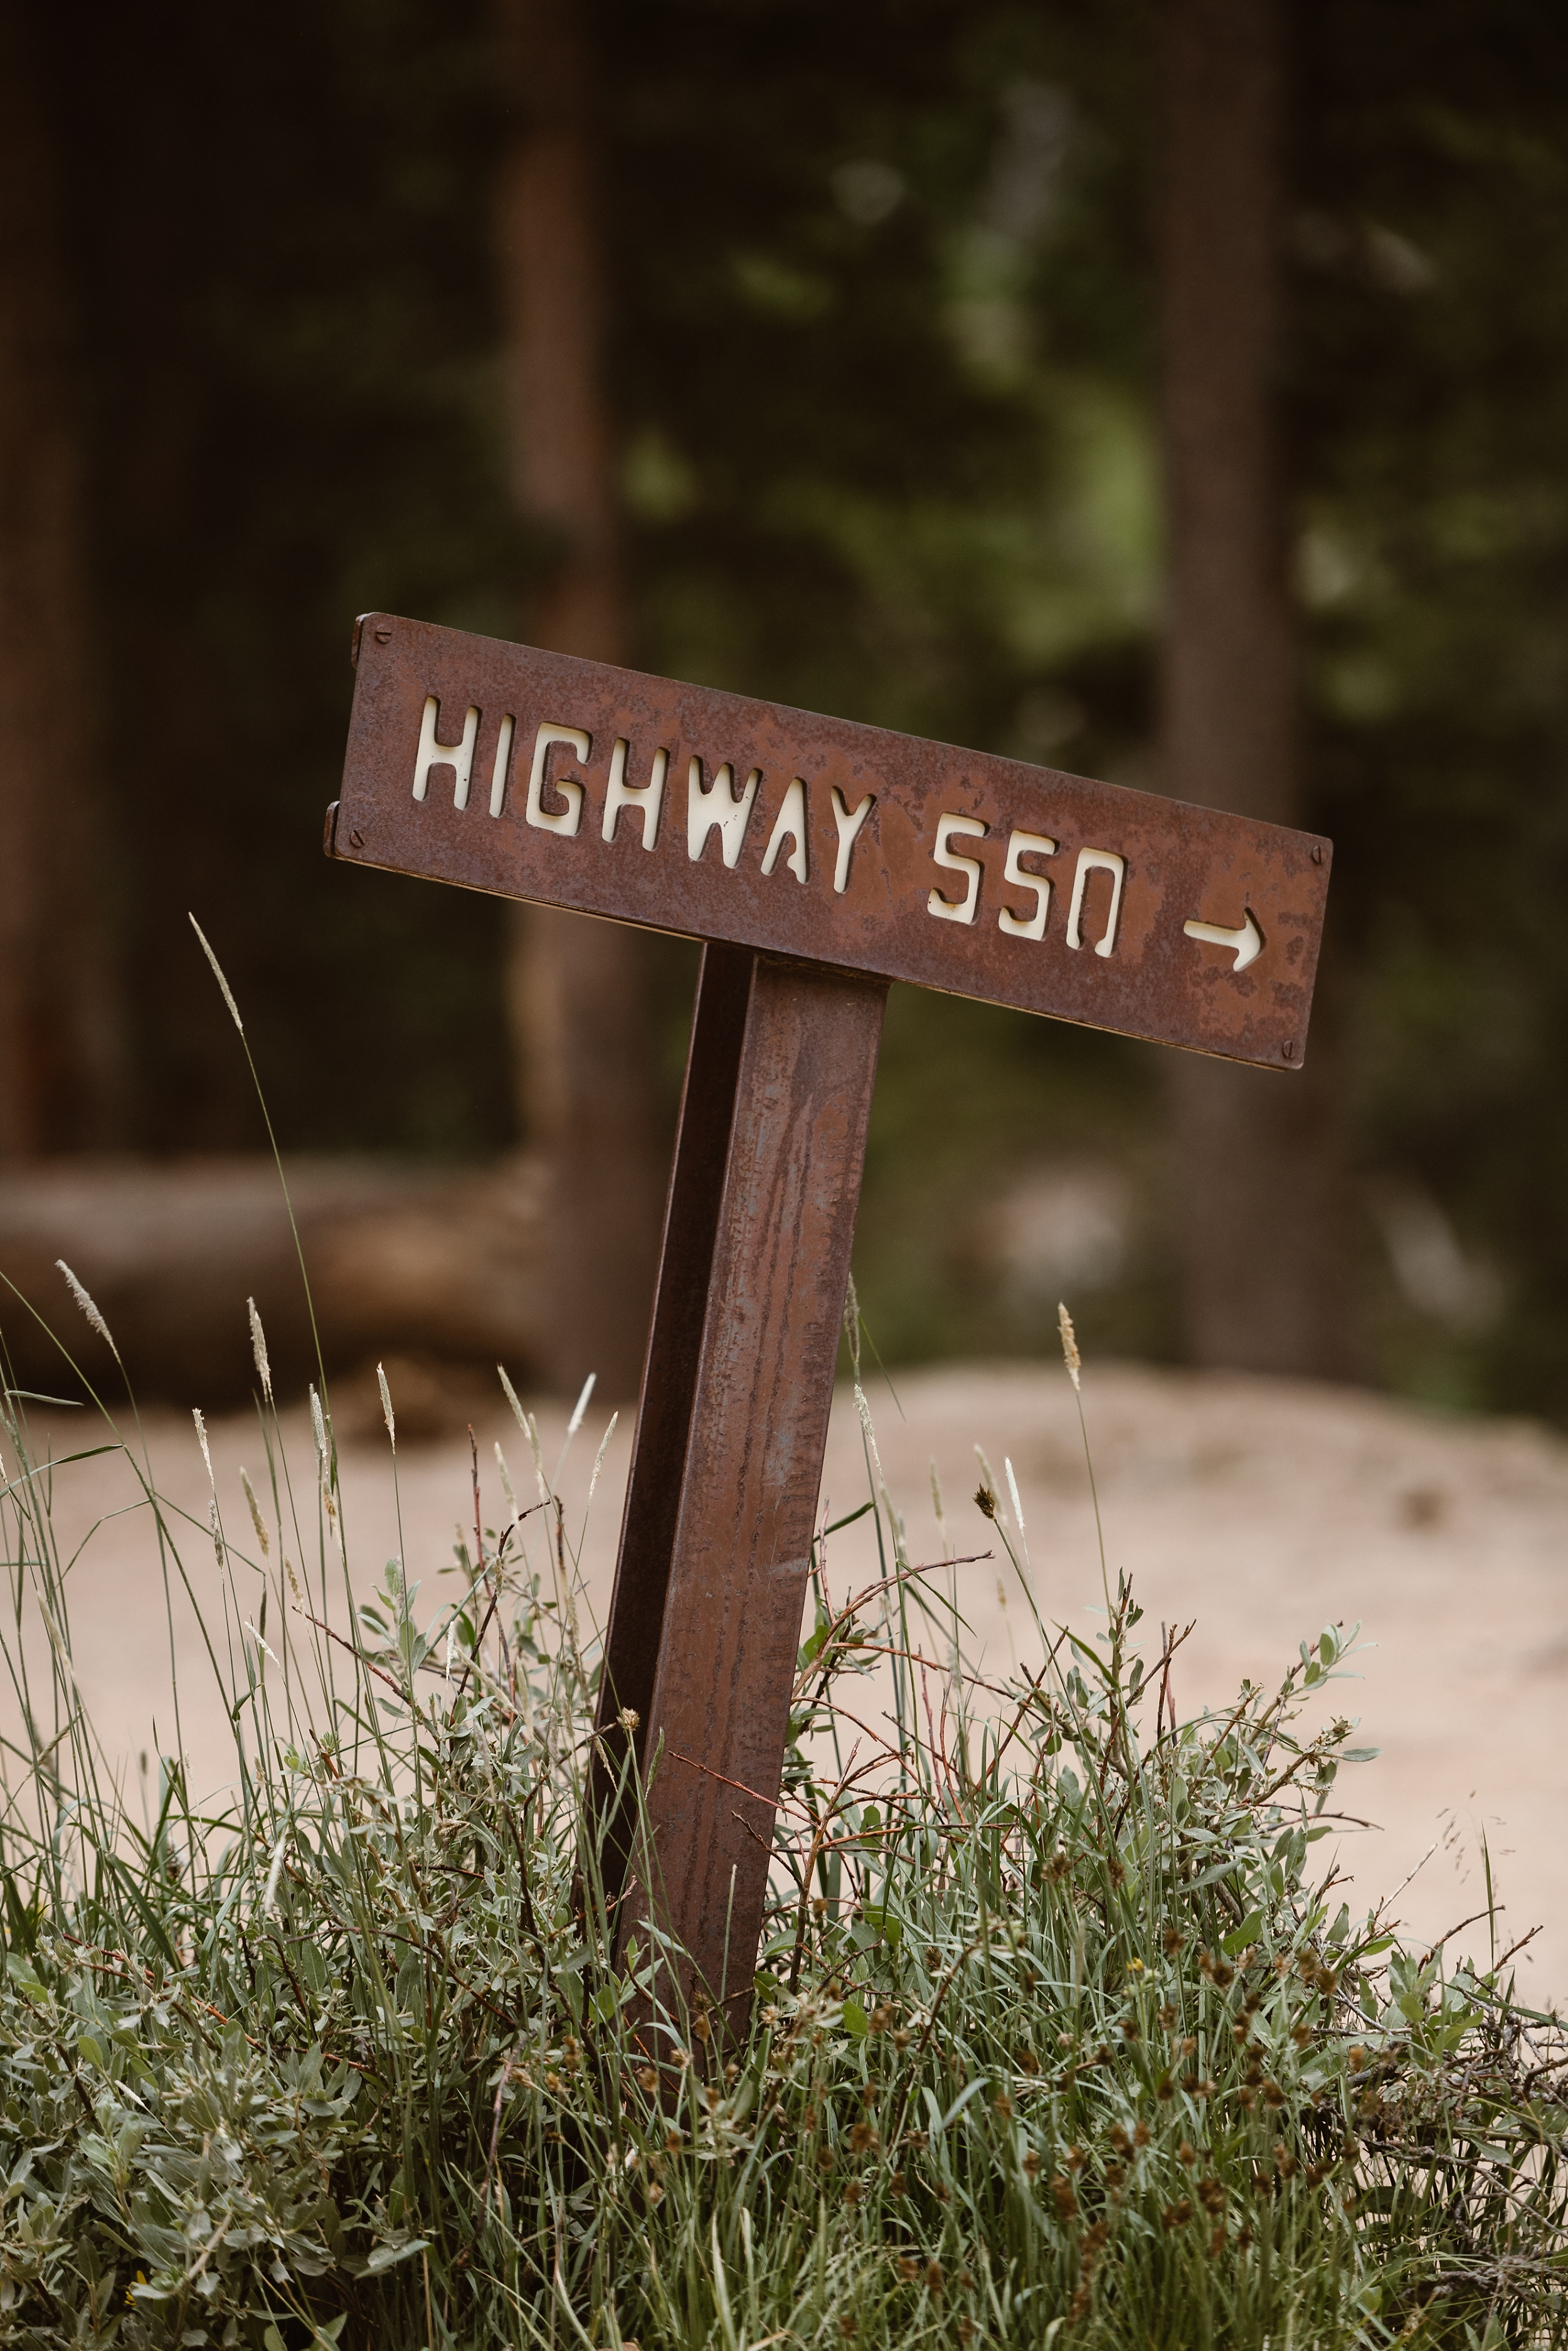 """A red-rust sign sticks out of a bed of weeds and grass stating """"Highway 550"""" with an arrow pointing to the right. This sign will lead the Jeep wedding car to the off road 4x4 path for Katie and Logan, the bride and groom's, elopement ceremony."""